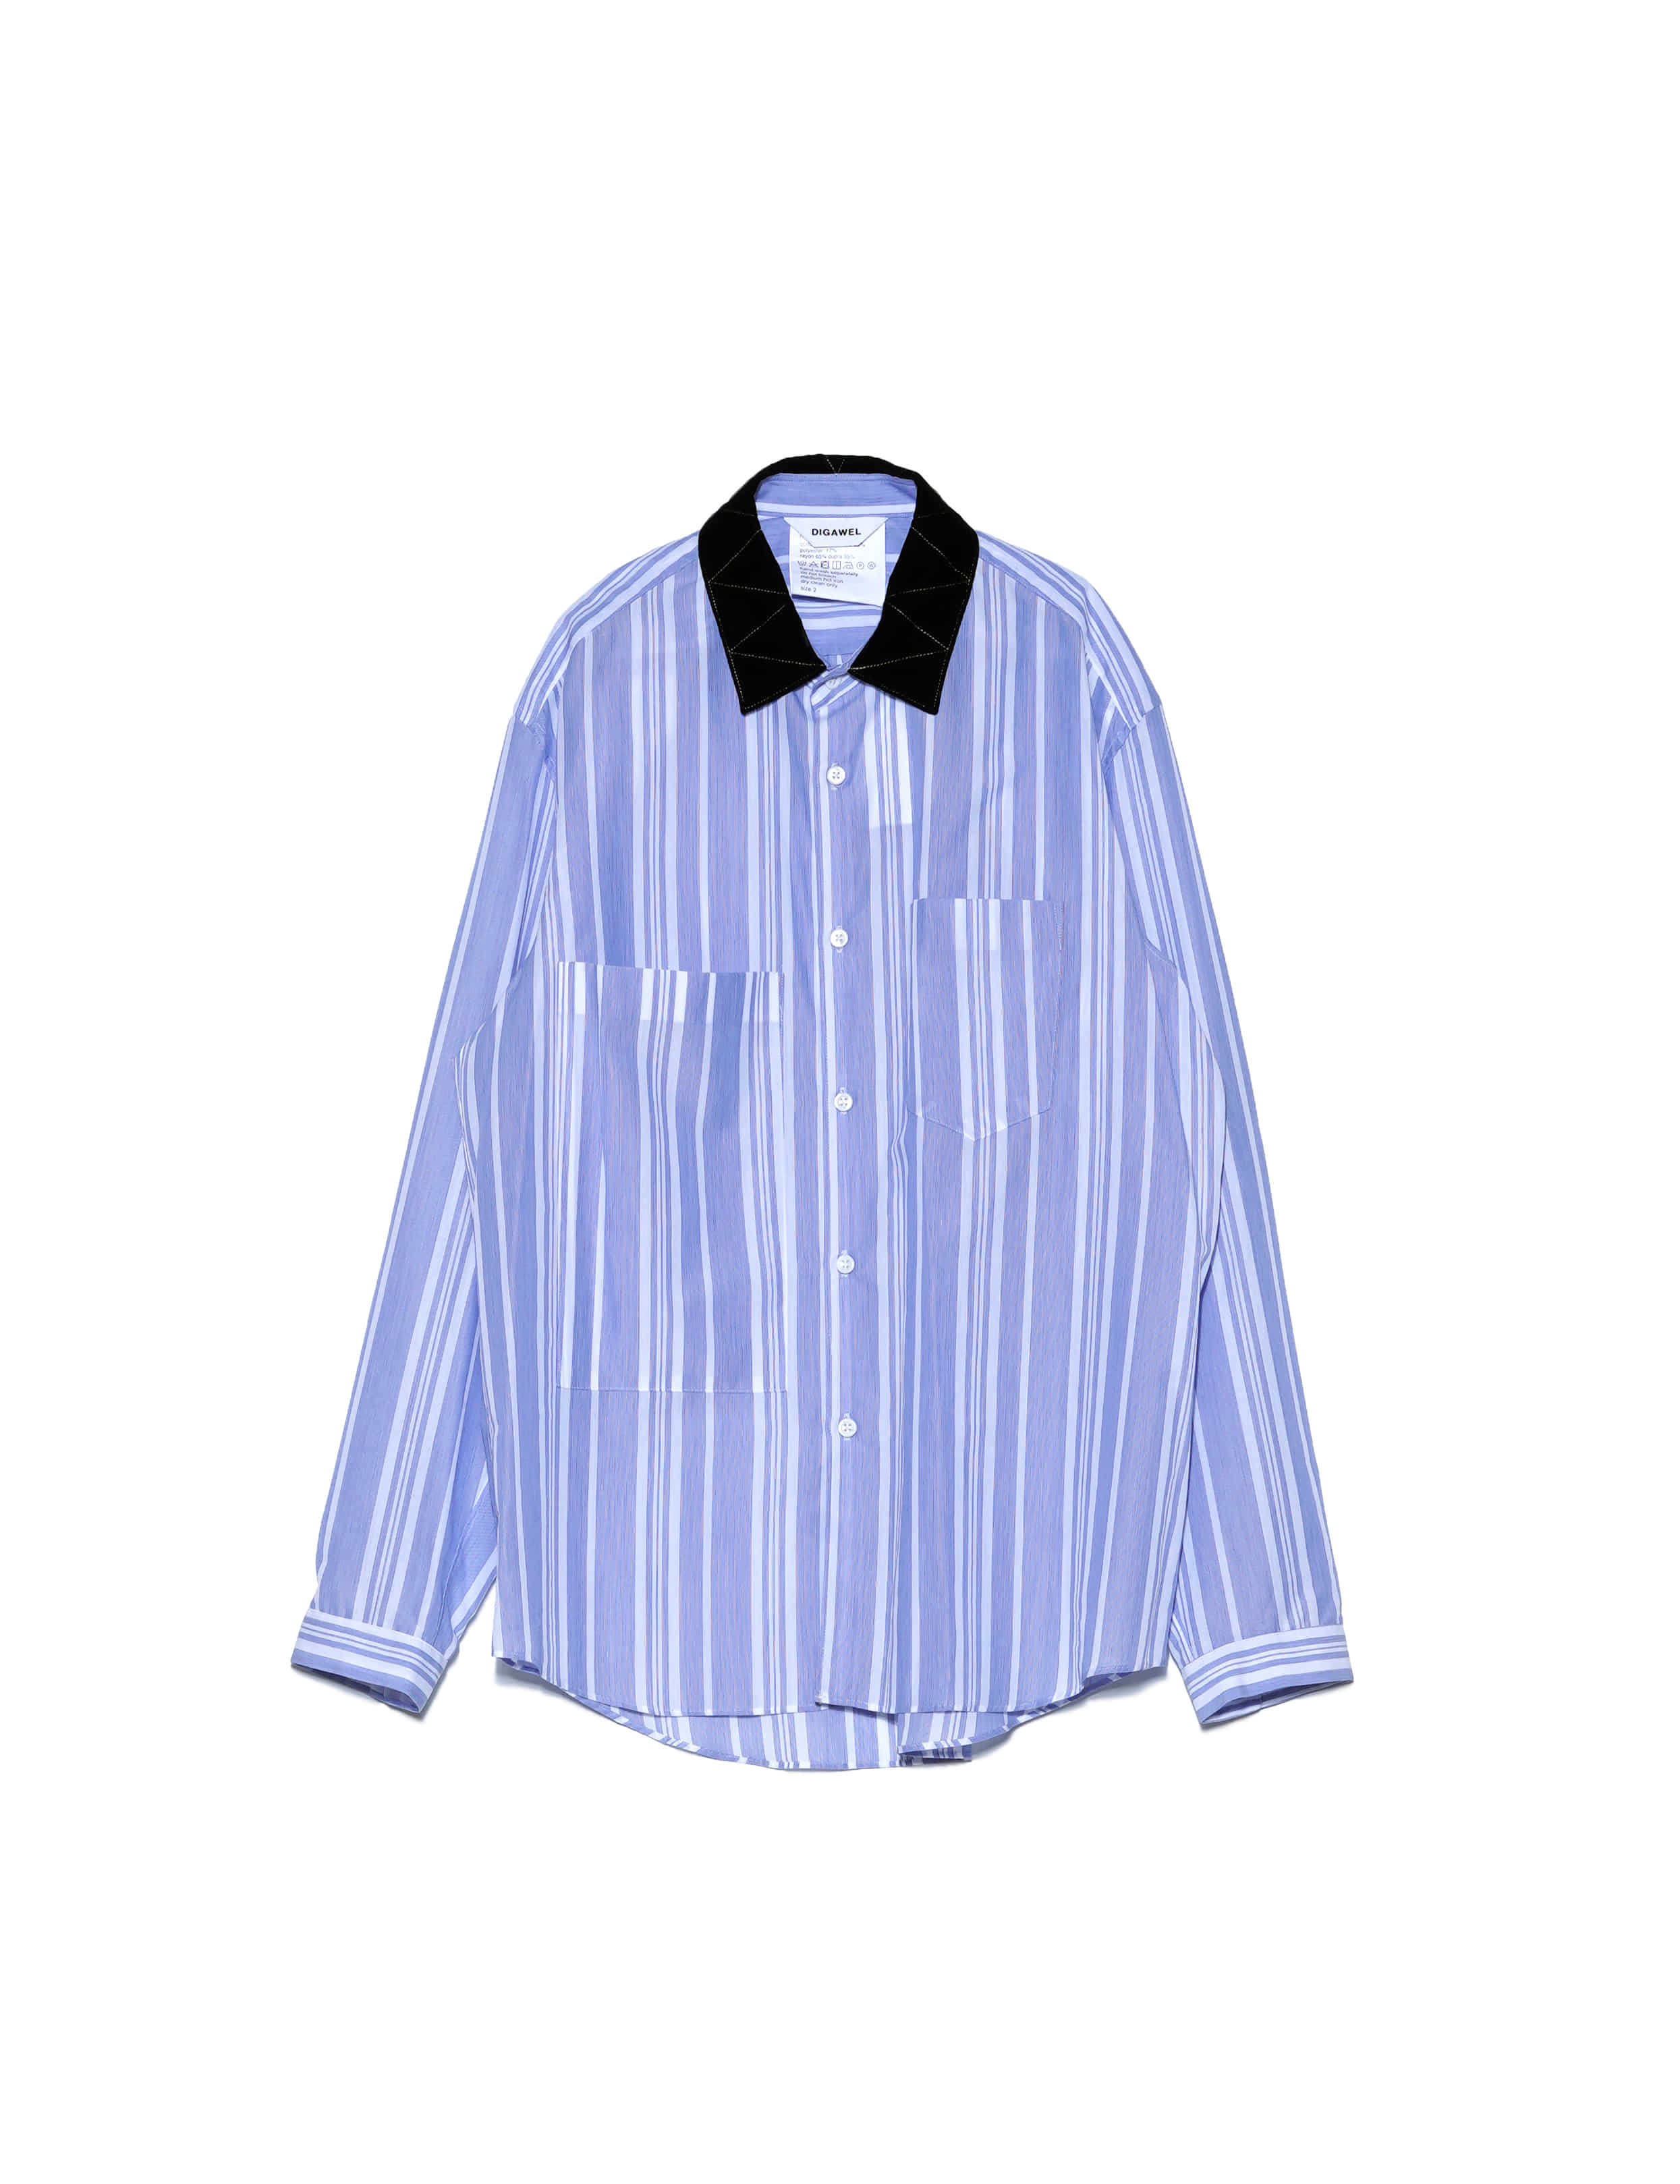 [DIGAWEL] VELVET COLLAR SHIRT (BLUE)